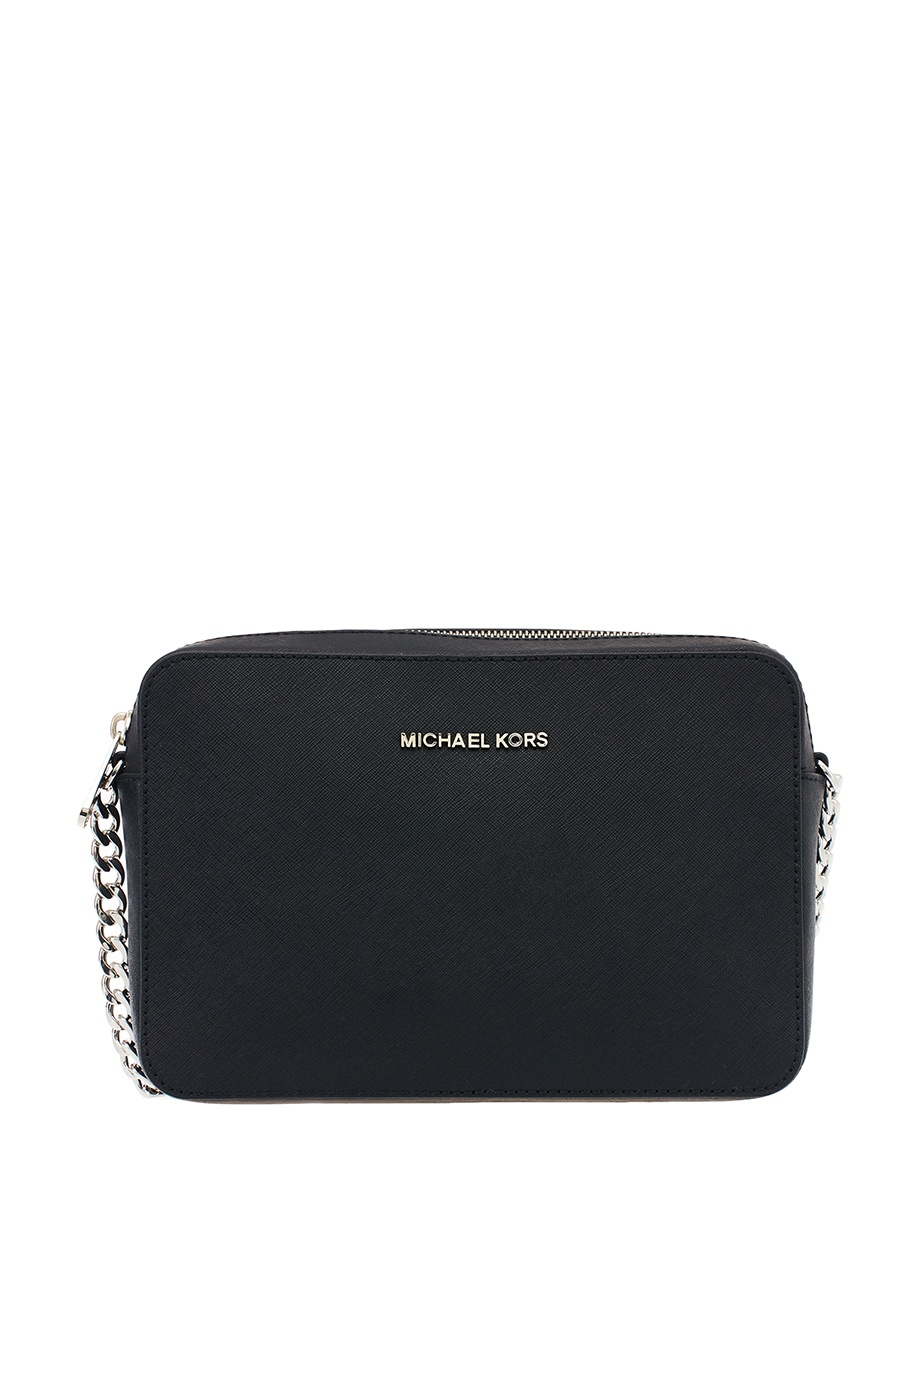 Черная сумка Crossbodies Michael Michael Kors (фото)